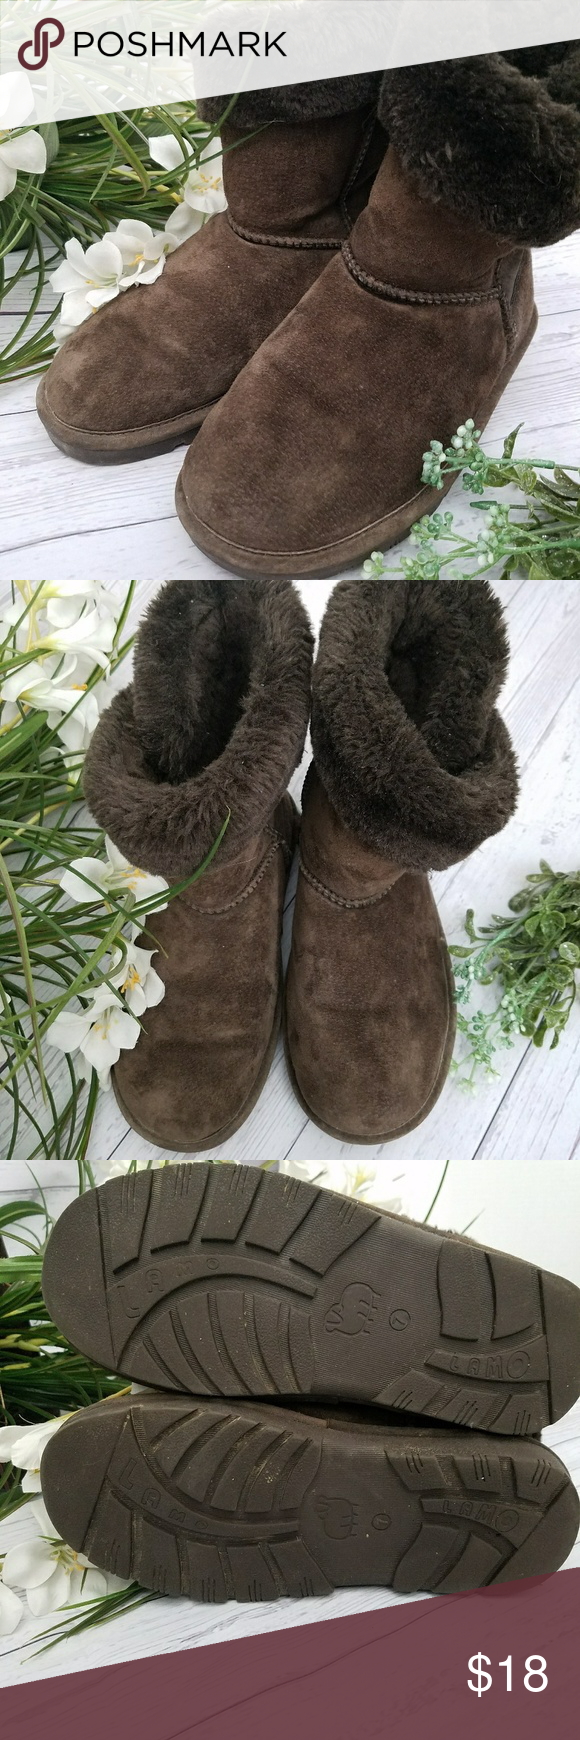 LAMO brown suede fur lined boots size 7 LAMO suede fur lined boots size 7 I cleaned these but they are not in excellent condition. I took pics from all angles, so please zoom in on them to see up close.  Warm and very comfortable.  Great to slip on to walk the dog or run errands.  Non smoking home Lamo Shoes Winter & Rain Boots